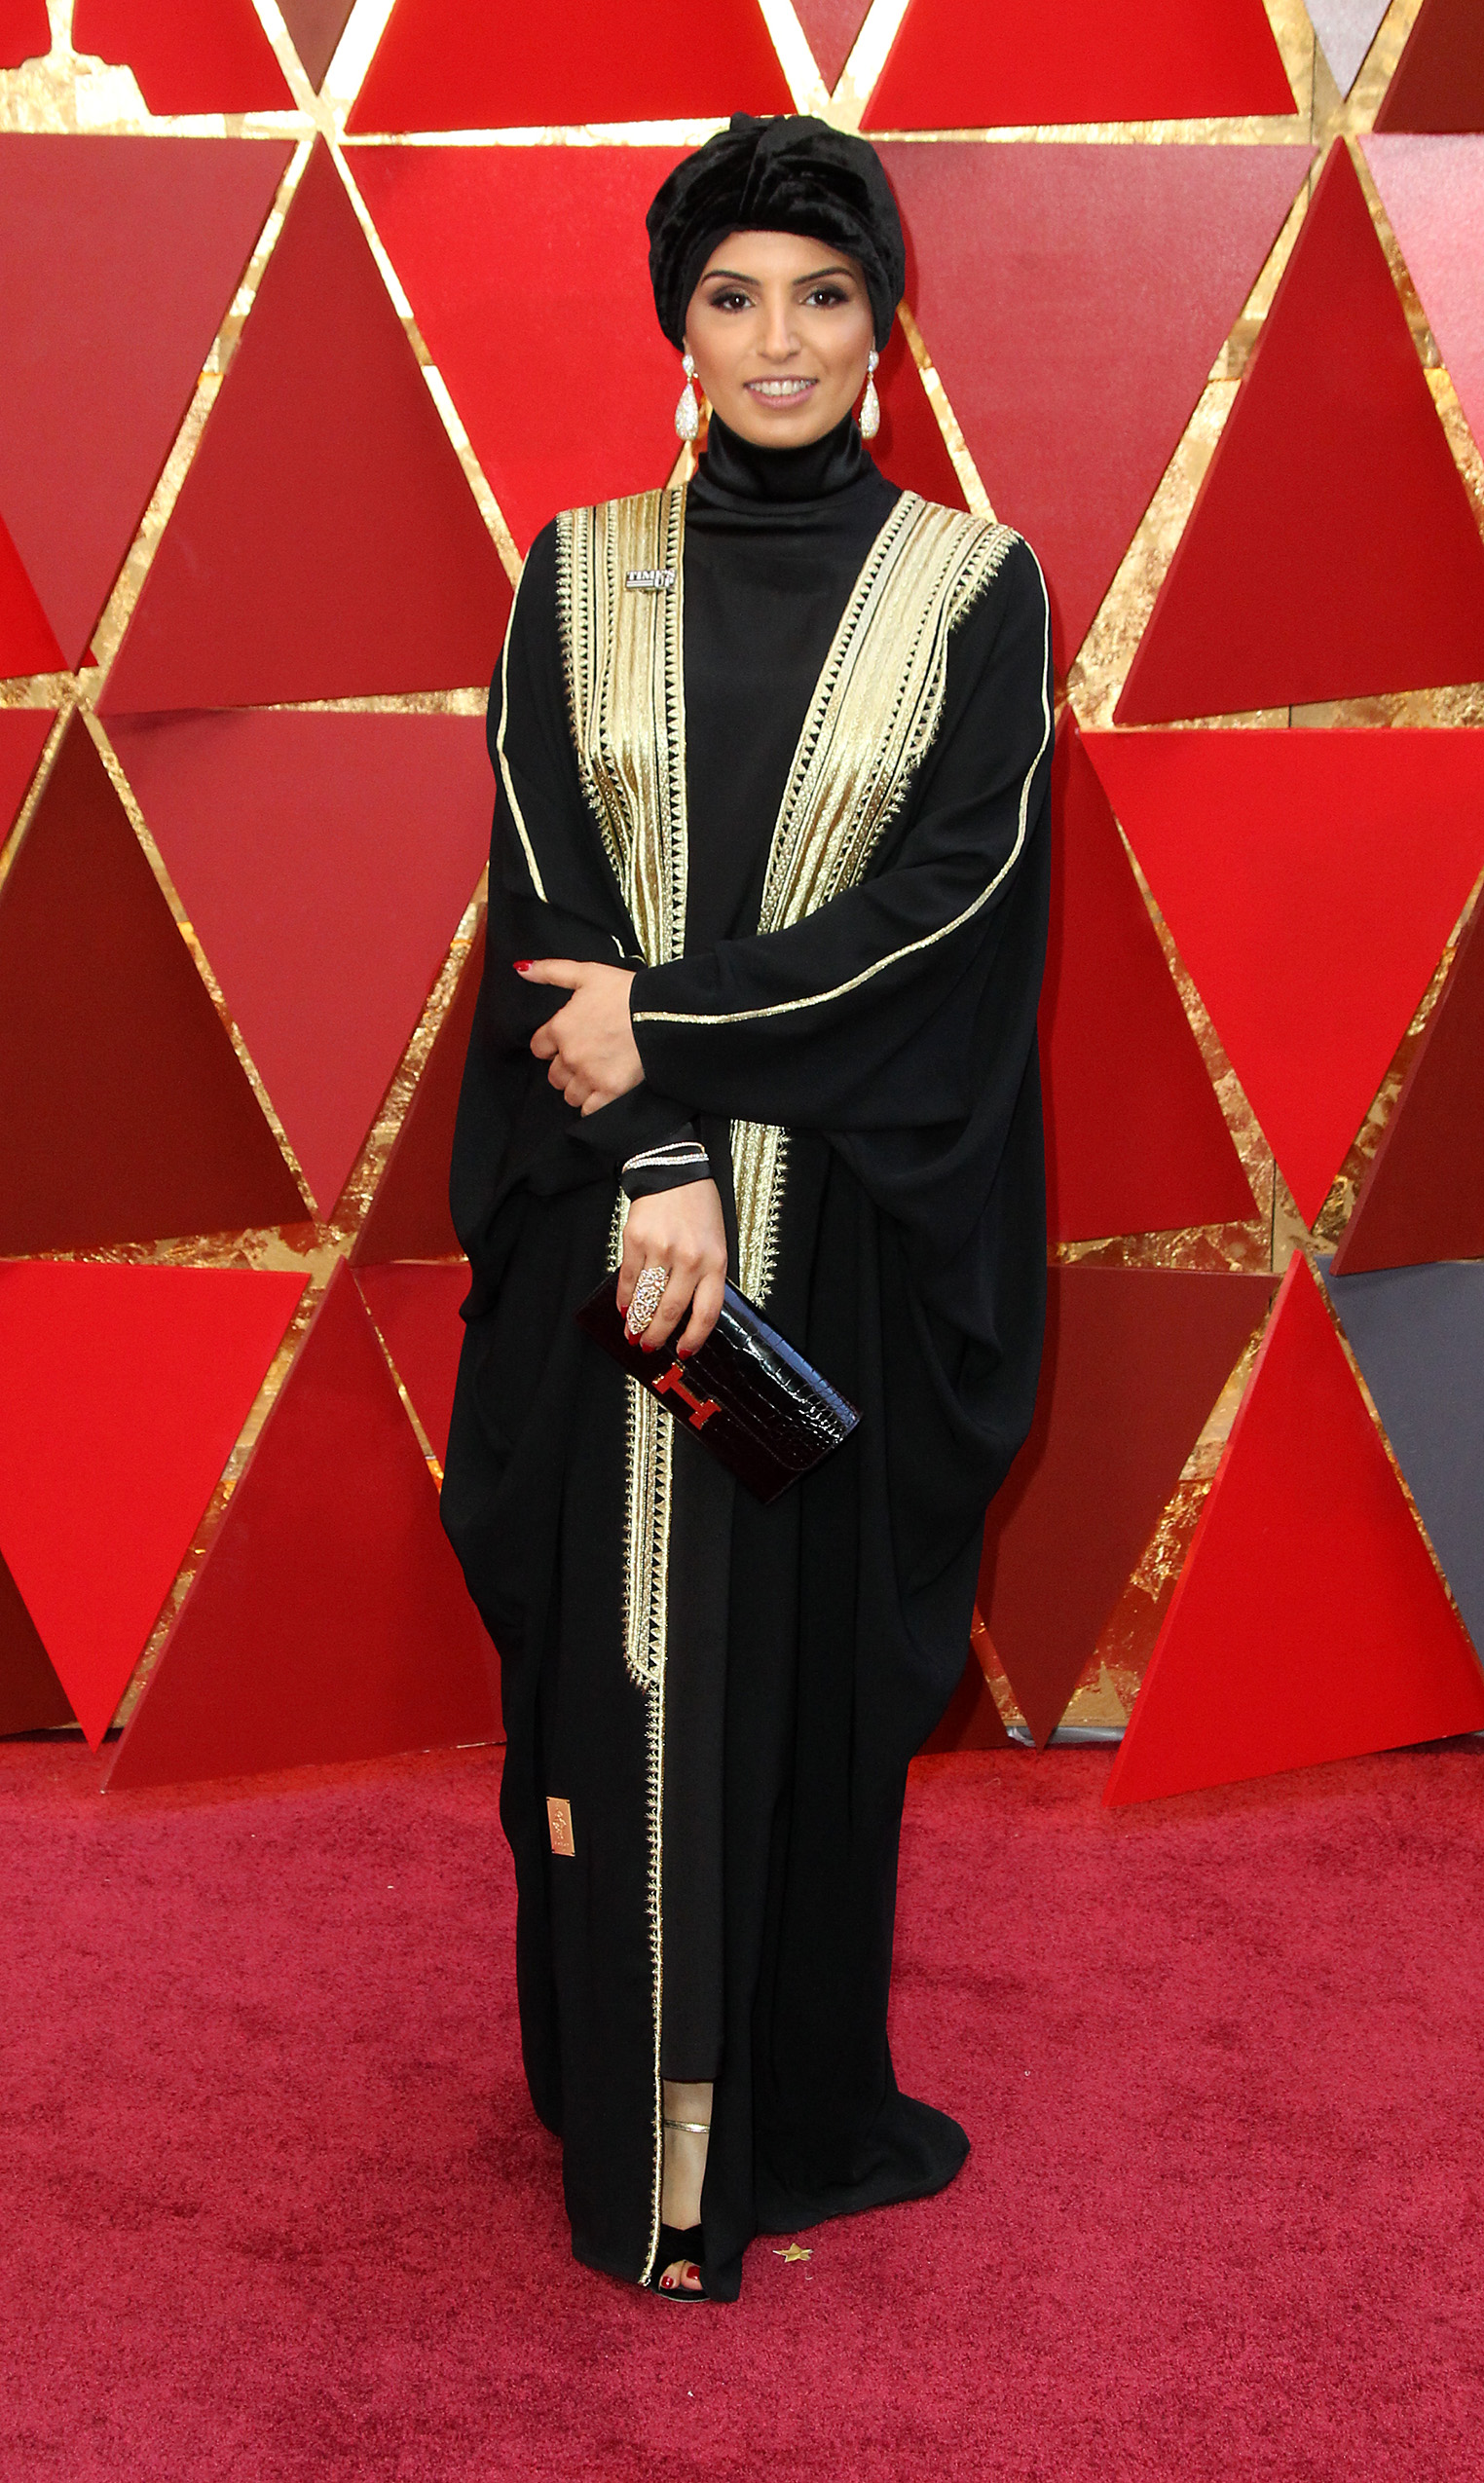 Fatma Al Remaihi{&nbsp;}arrives at the 90th Annual Academy Awards (Oscars) held at the Dolby Theater in Hollywood, California. (Image: Adriana M. Barraza/WENN.com)<p></p>